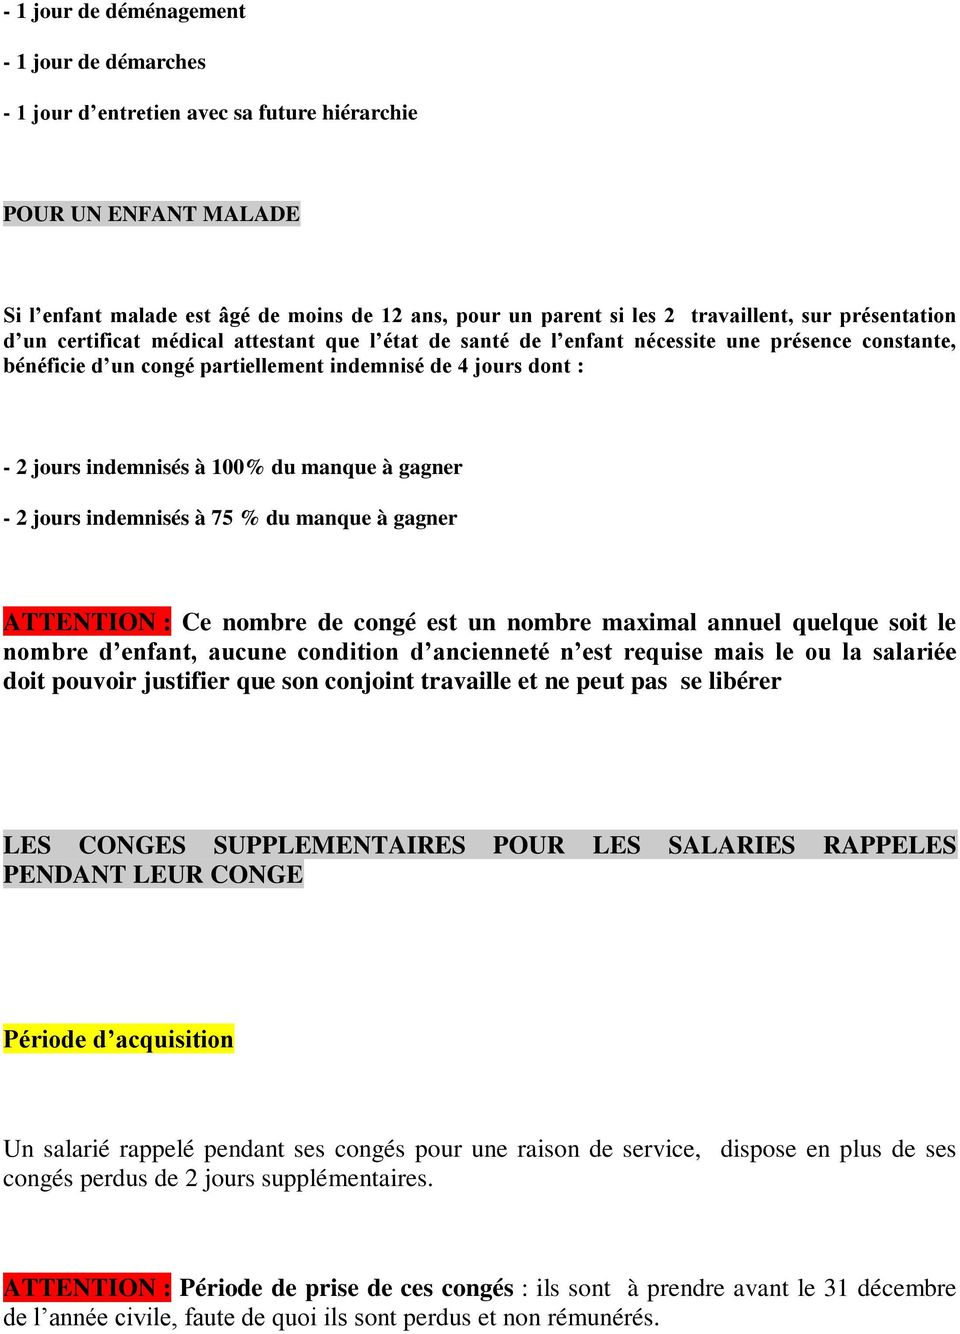 Conges Speciaux Conges Supplementaires Conges Divers Pdf